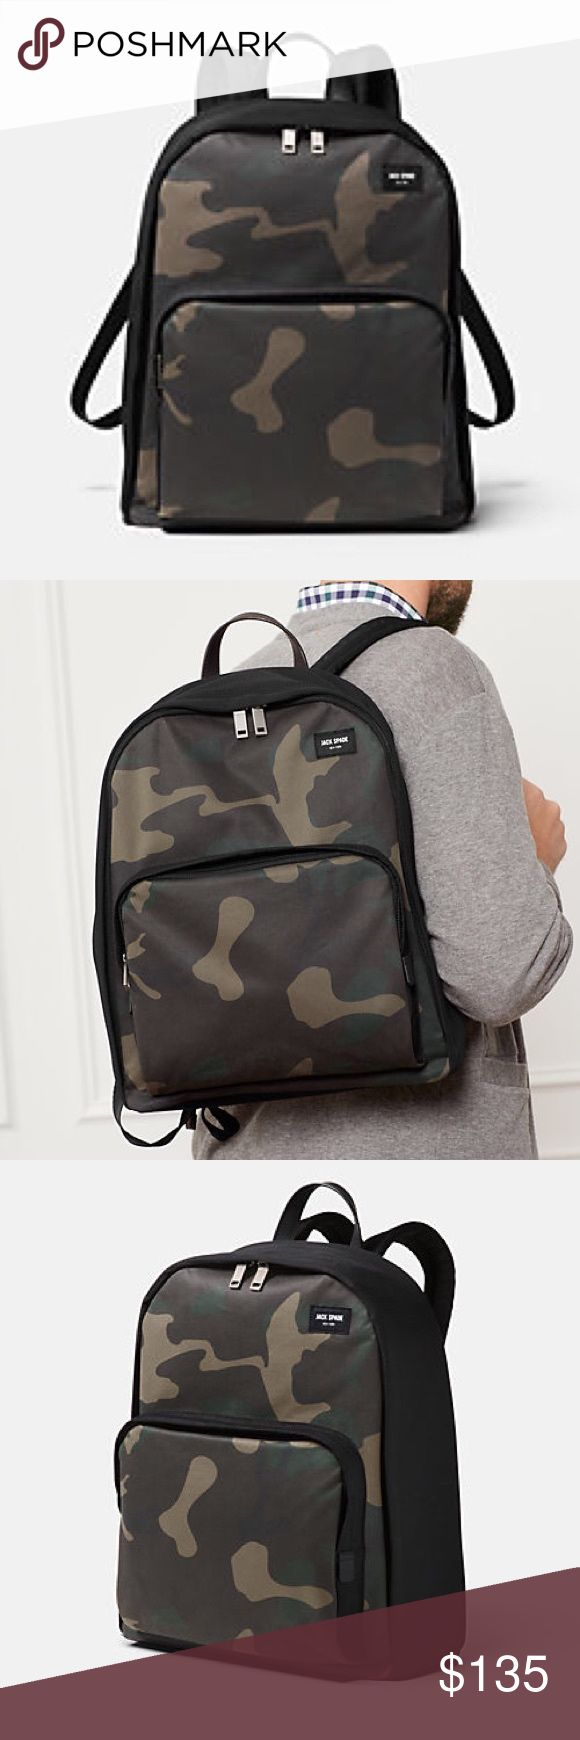 NWT Jack Spade Camo Backpack Stylish and classic camo twill bookbag/ backpack. See picture for comparable size. Fits a laptop and has plenty of space with big front pocket! Jack Spade Bags Backpacks